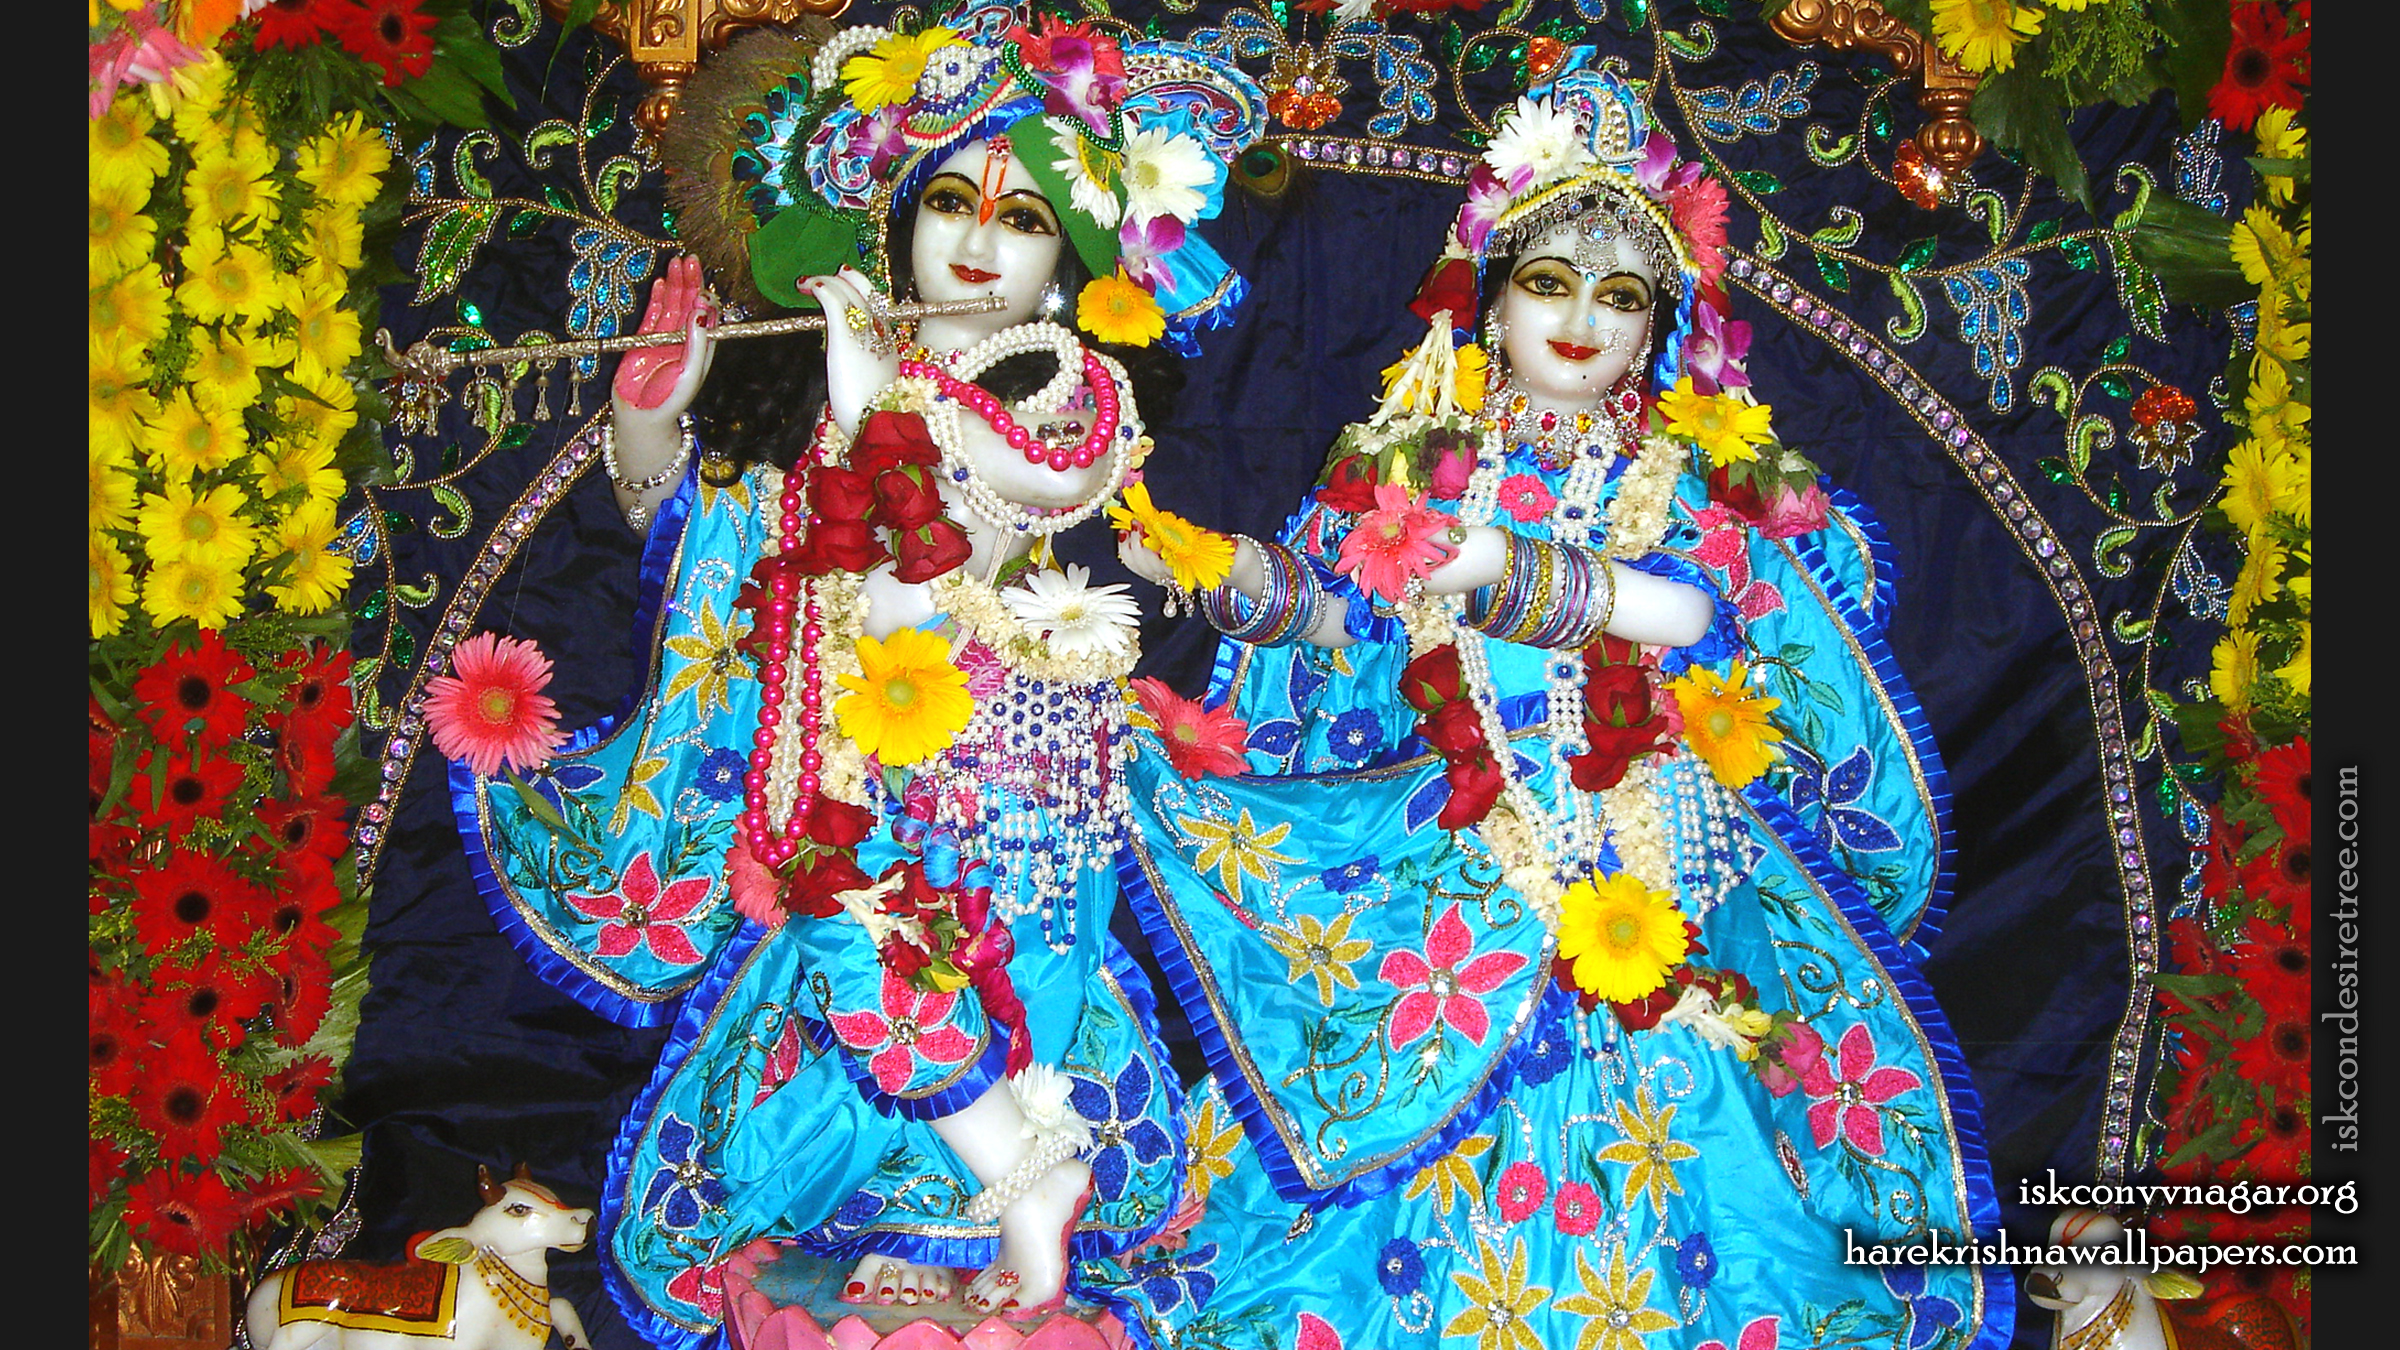 Sri Sri Radha Giridhari Wallpaper (023) Size 2400x1350 Download